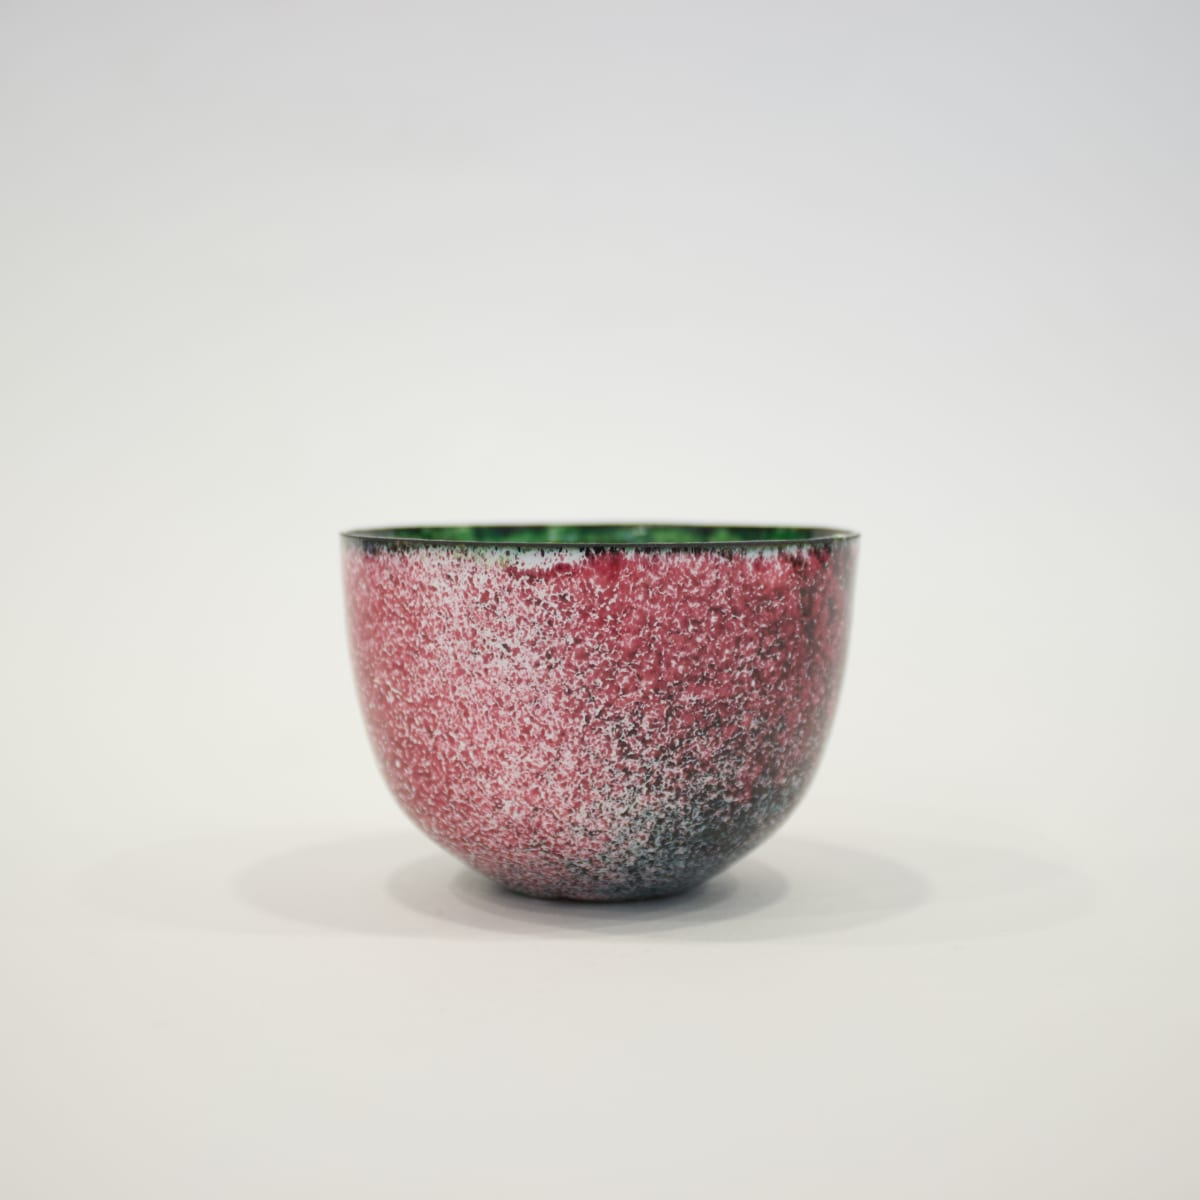 Lundsten Glazzard Small Cup in Green & Pink, 2019 Copper Cup with Enamelled Detailing 5 x 8 x 8 cm 2 x 3 1/8 x 3 1/8 in